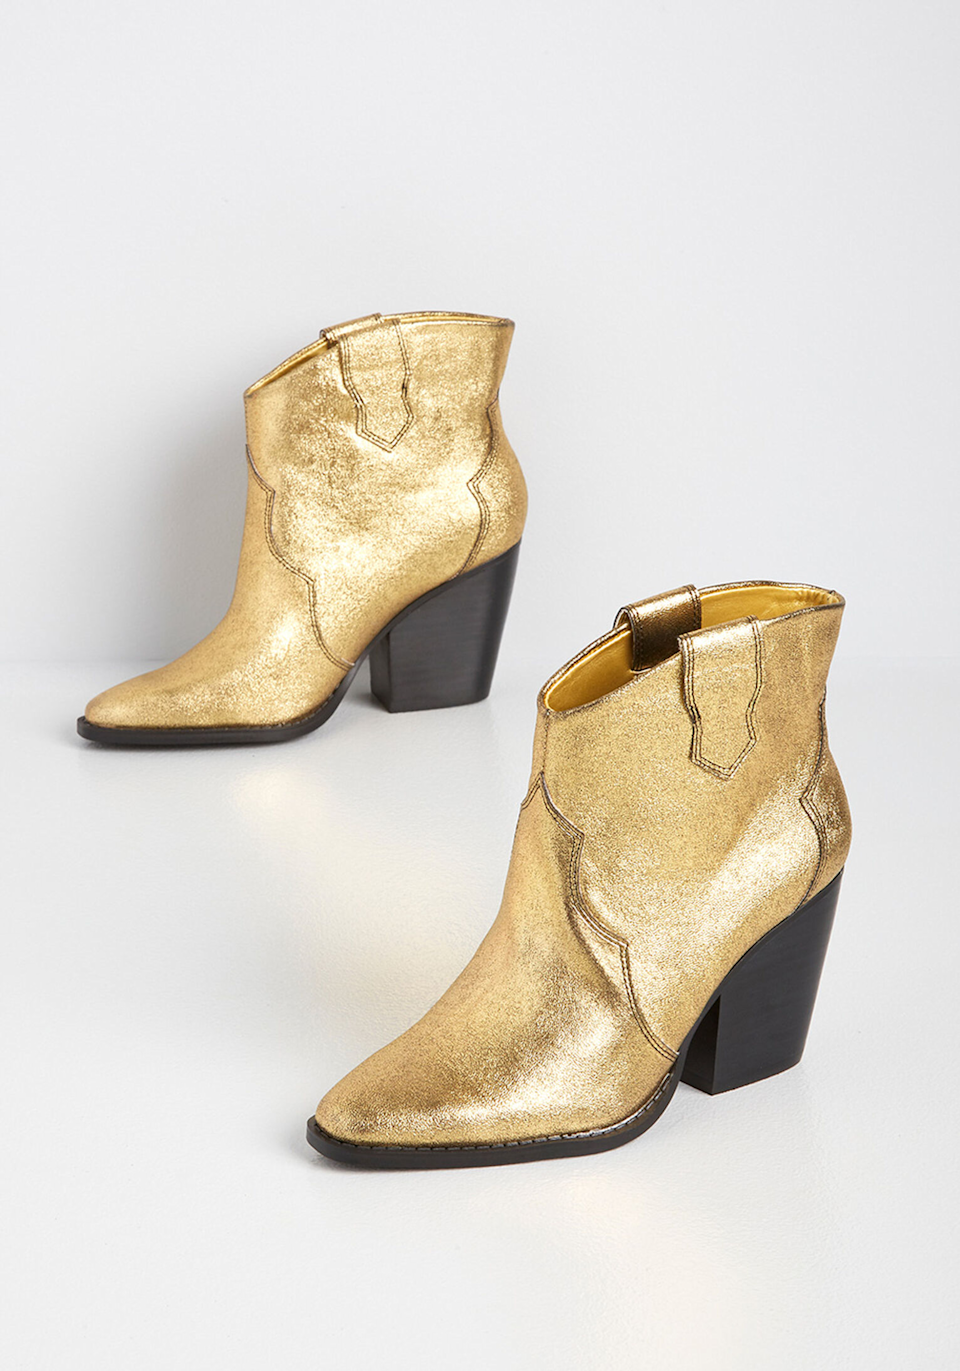 """<h3>Western</h3><br>The undeniable breakout trend of last fall is here to stay (because, honestly, it was always there right in front of our eyes to begin with). Cowboy boots offer a hefty dose of style while retaining a comfortably low profile.<br><br><strong>Chinese Laundry</strong> Walking on Gold Dust Ankle Boot, $, available at <a href=""""https://go.skimresources.com/?id=30283X879131&url=https%3A%2F%2Fwww.modcloth.com%2Fshop%2Fshoes%2Fchinese-laundry-walking-on-gold-dust-ankle-boot-in-gold%2F171425.html"""" rel=""""nofollow noopener"""" target=""""_blank"""" data-ylk=""""slk:ModCloth"""" class=""""link rapid-noclick-resp"""">ModCloth</a>"""